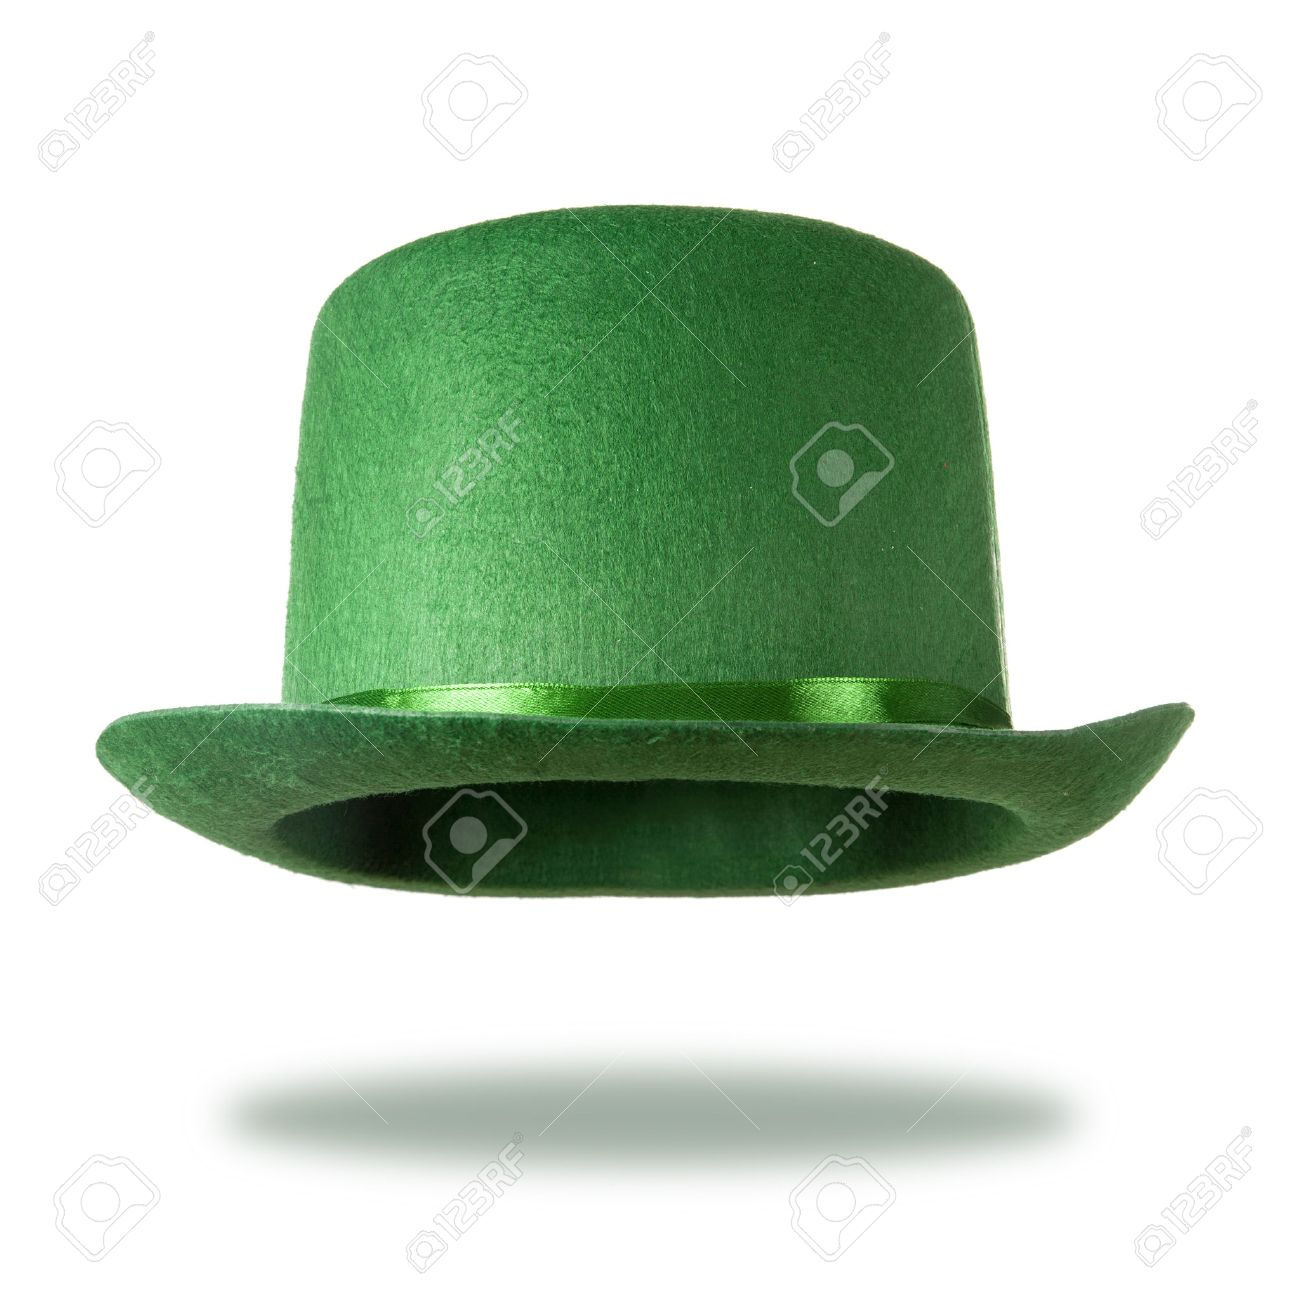 green st patrick u0027s day hat isolated on white background stock